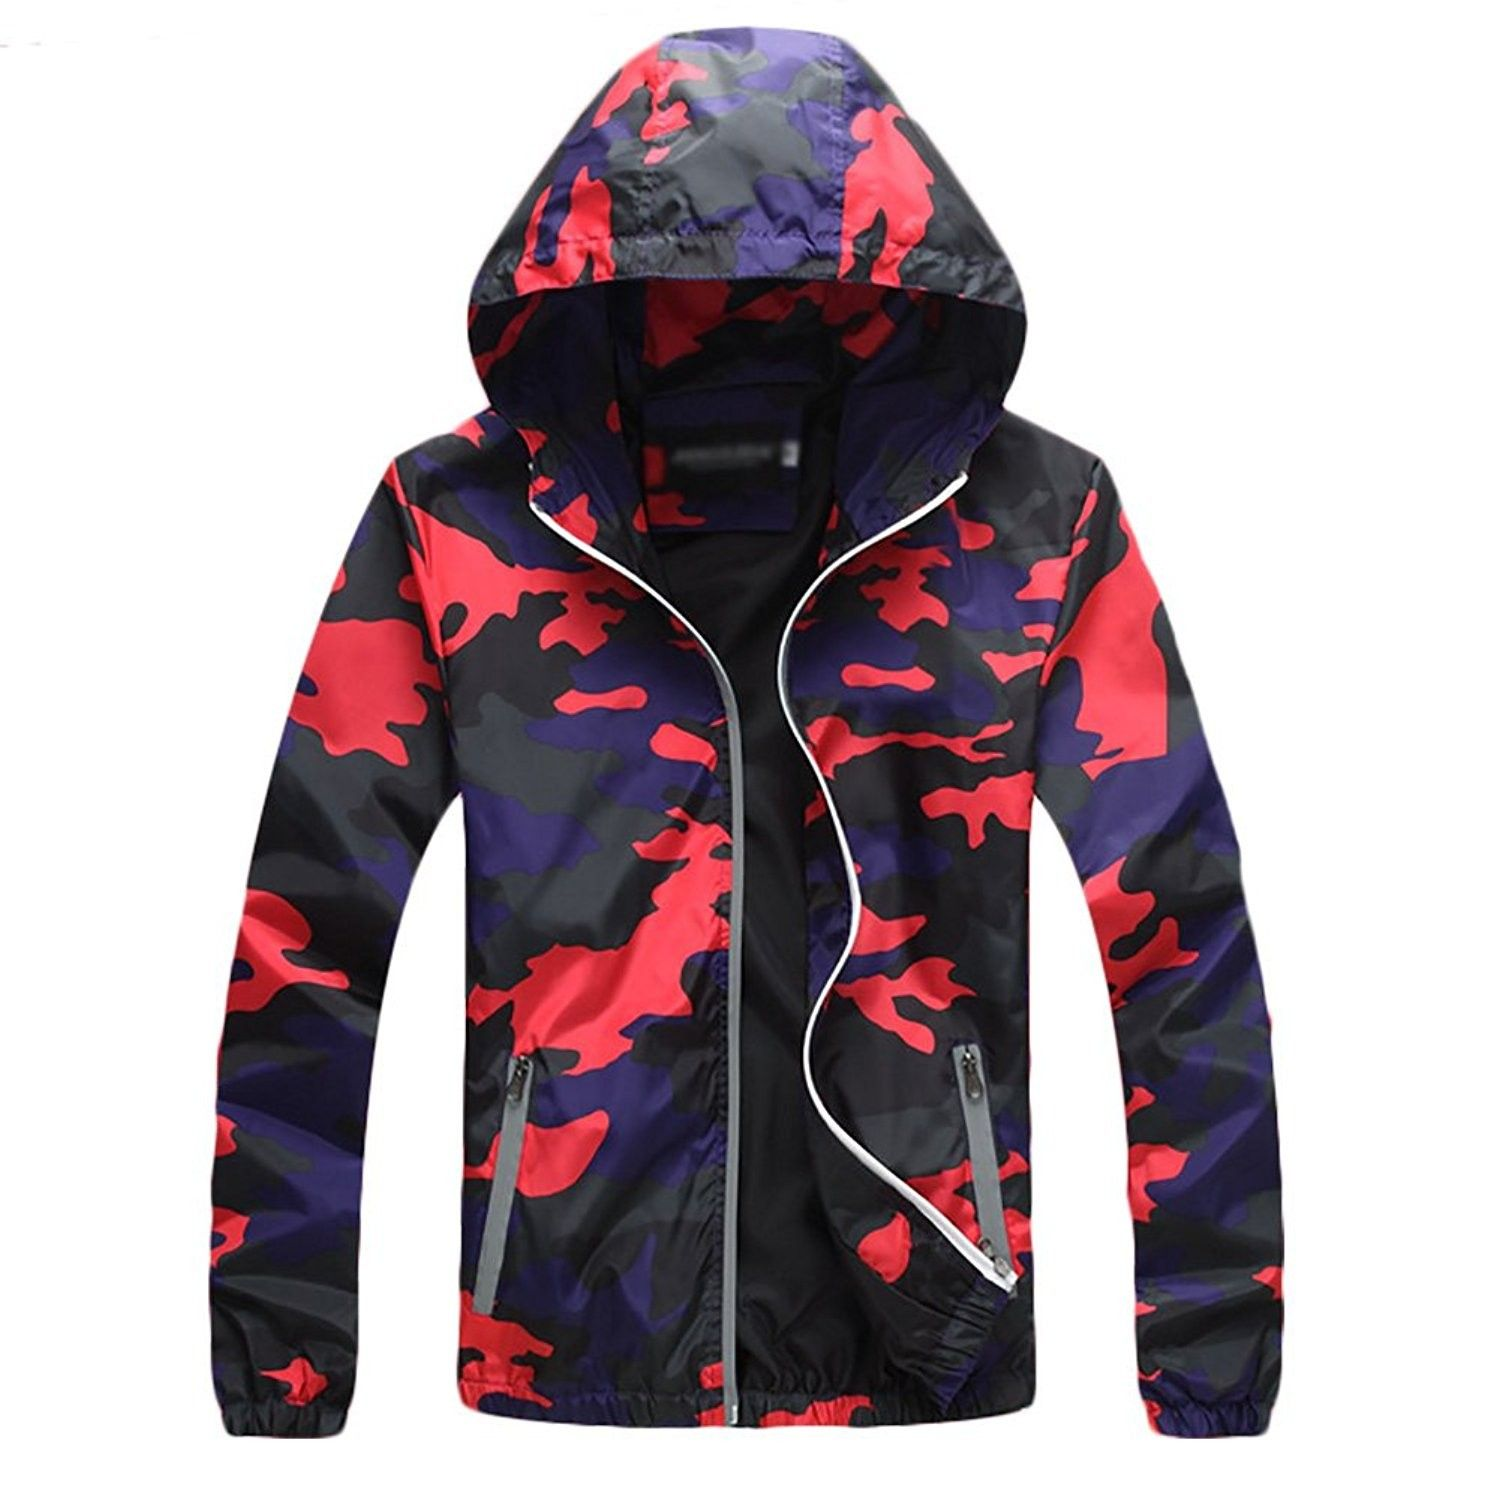 Womens Cycling Waterproof Camouflage Red Cw185a4s74w Womens Fashion Jackets Hoodie Jacket Men Camouflage Jacket [ 1500 x 1500 Pixel ]